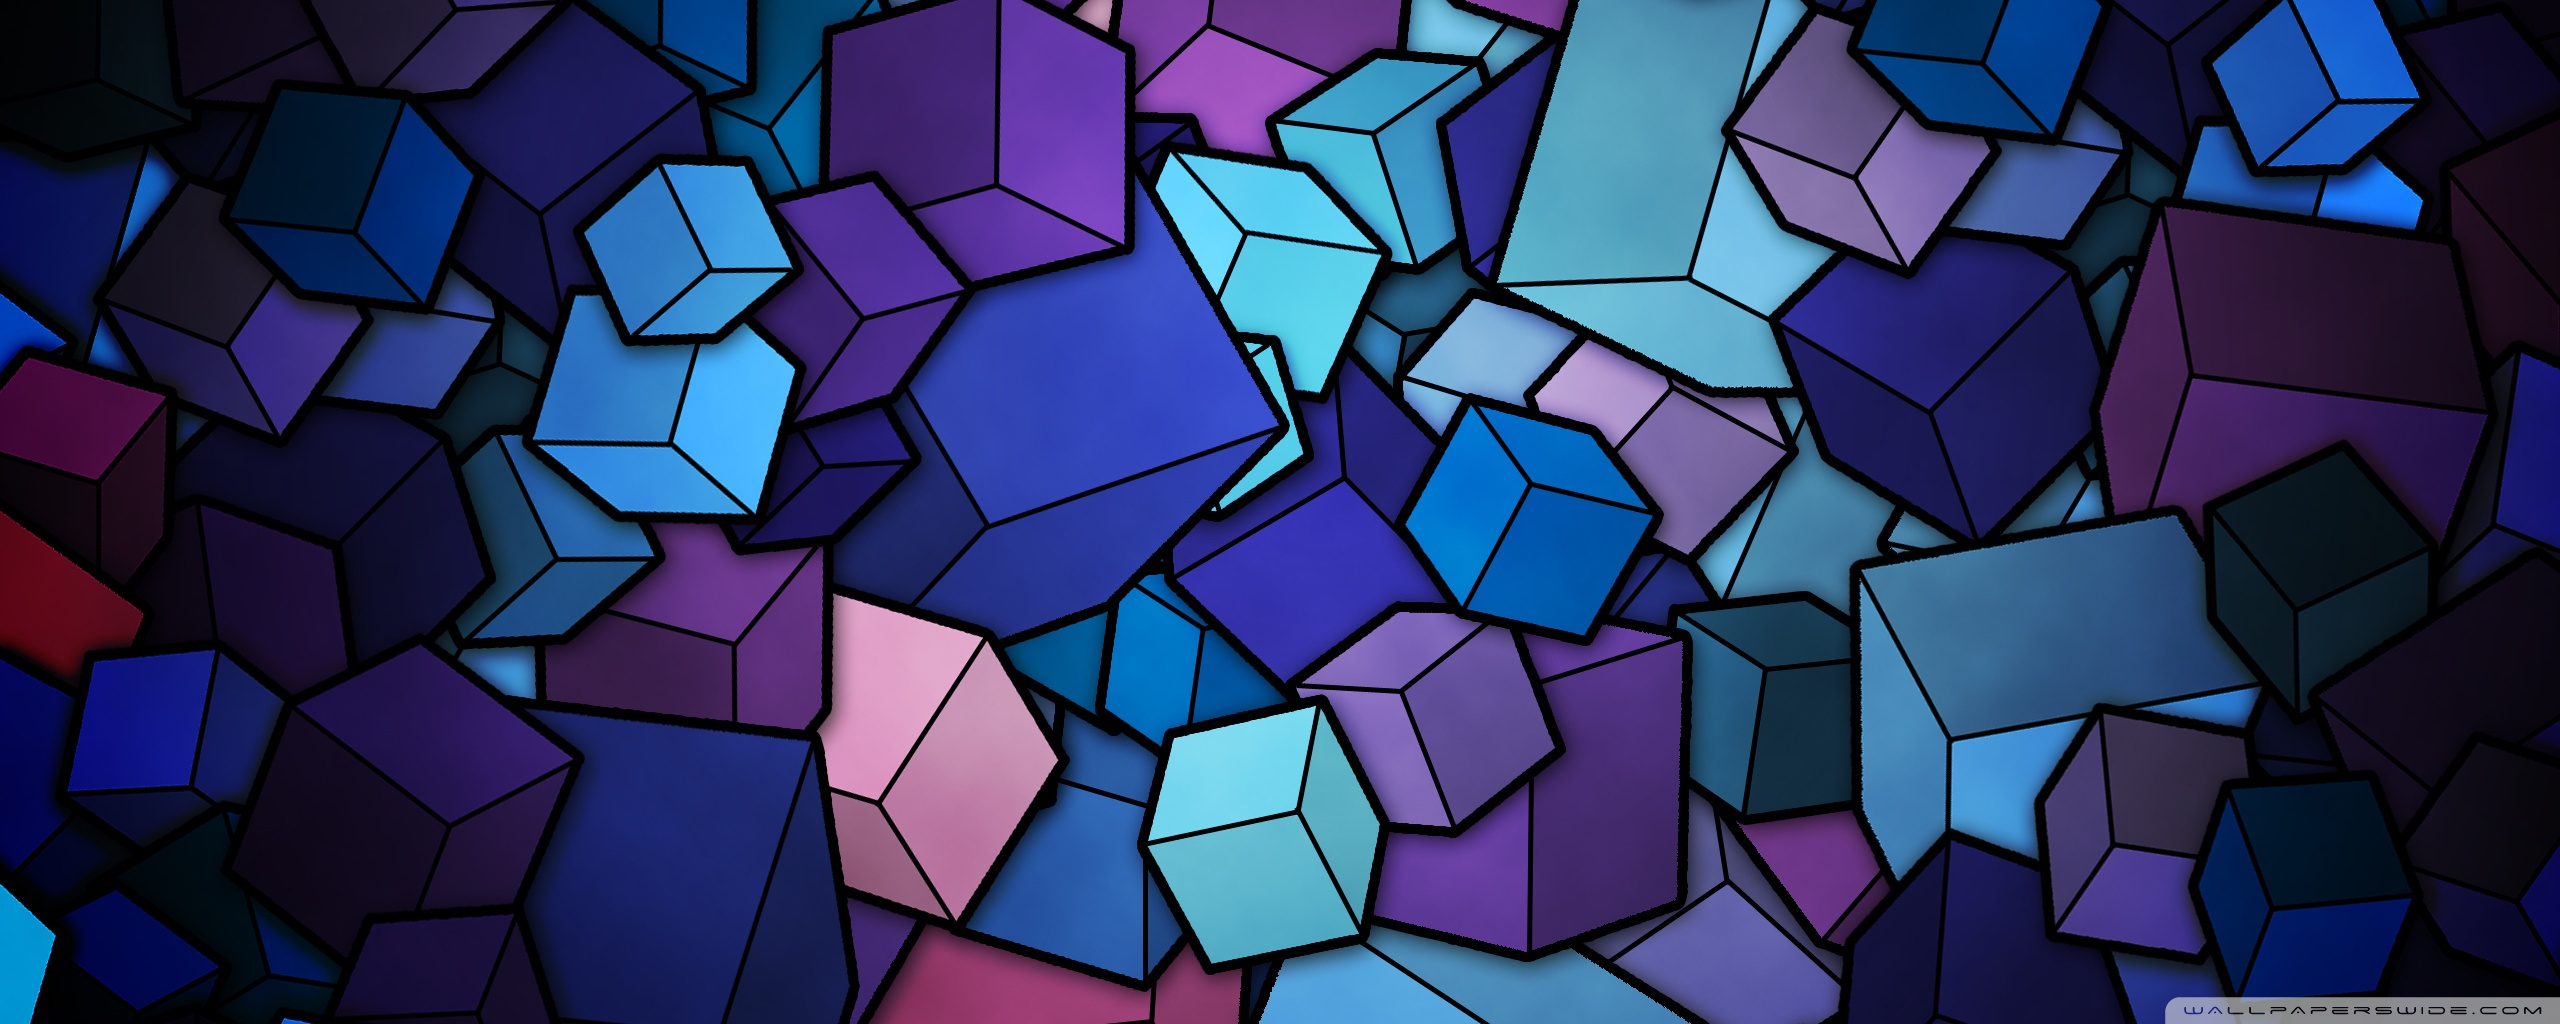 Blue Cube Wallpaper